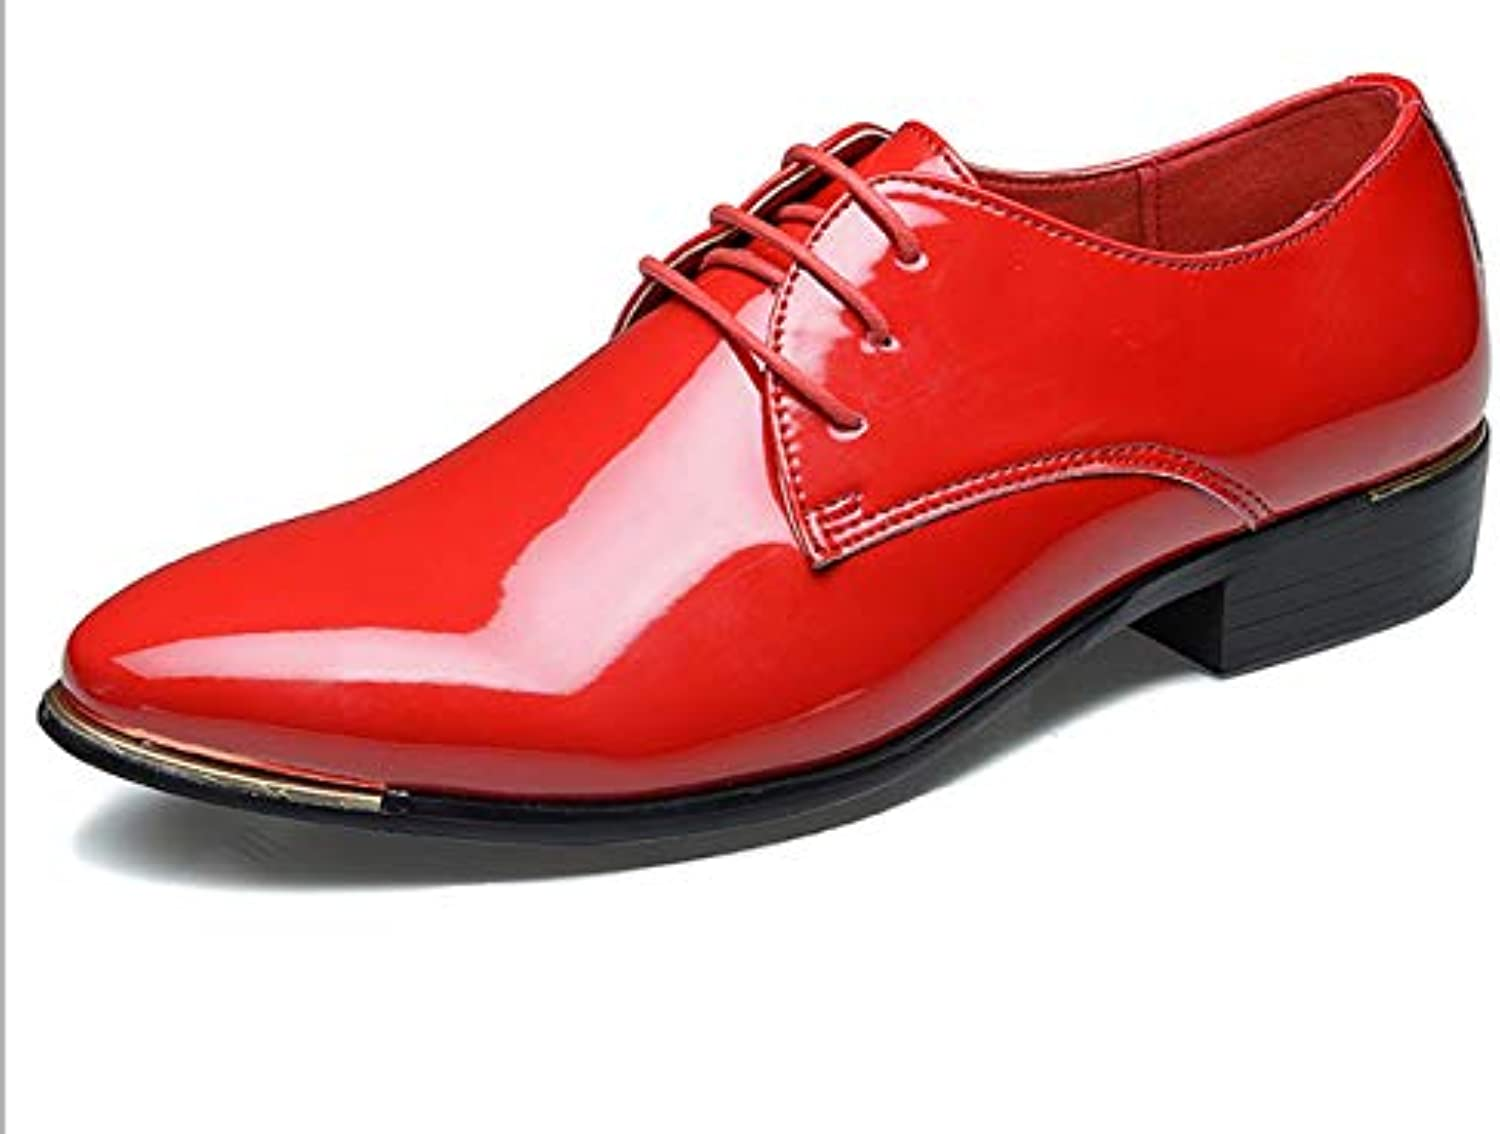 Gentleman/Lady Men's Oxford Oxford Oxford Tuxedo Shoes New product Modern design Personalization trend 6b81b3